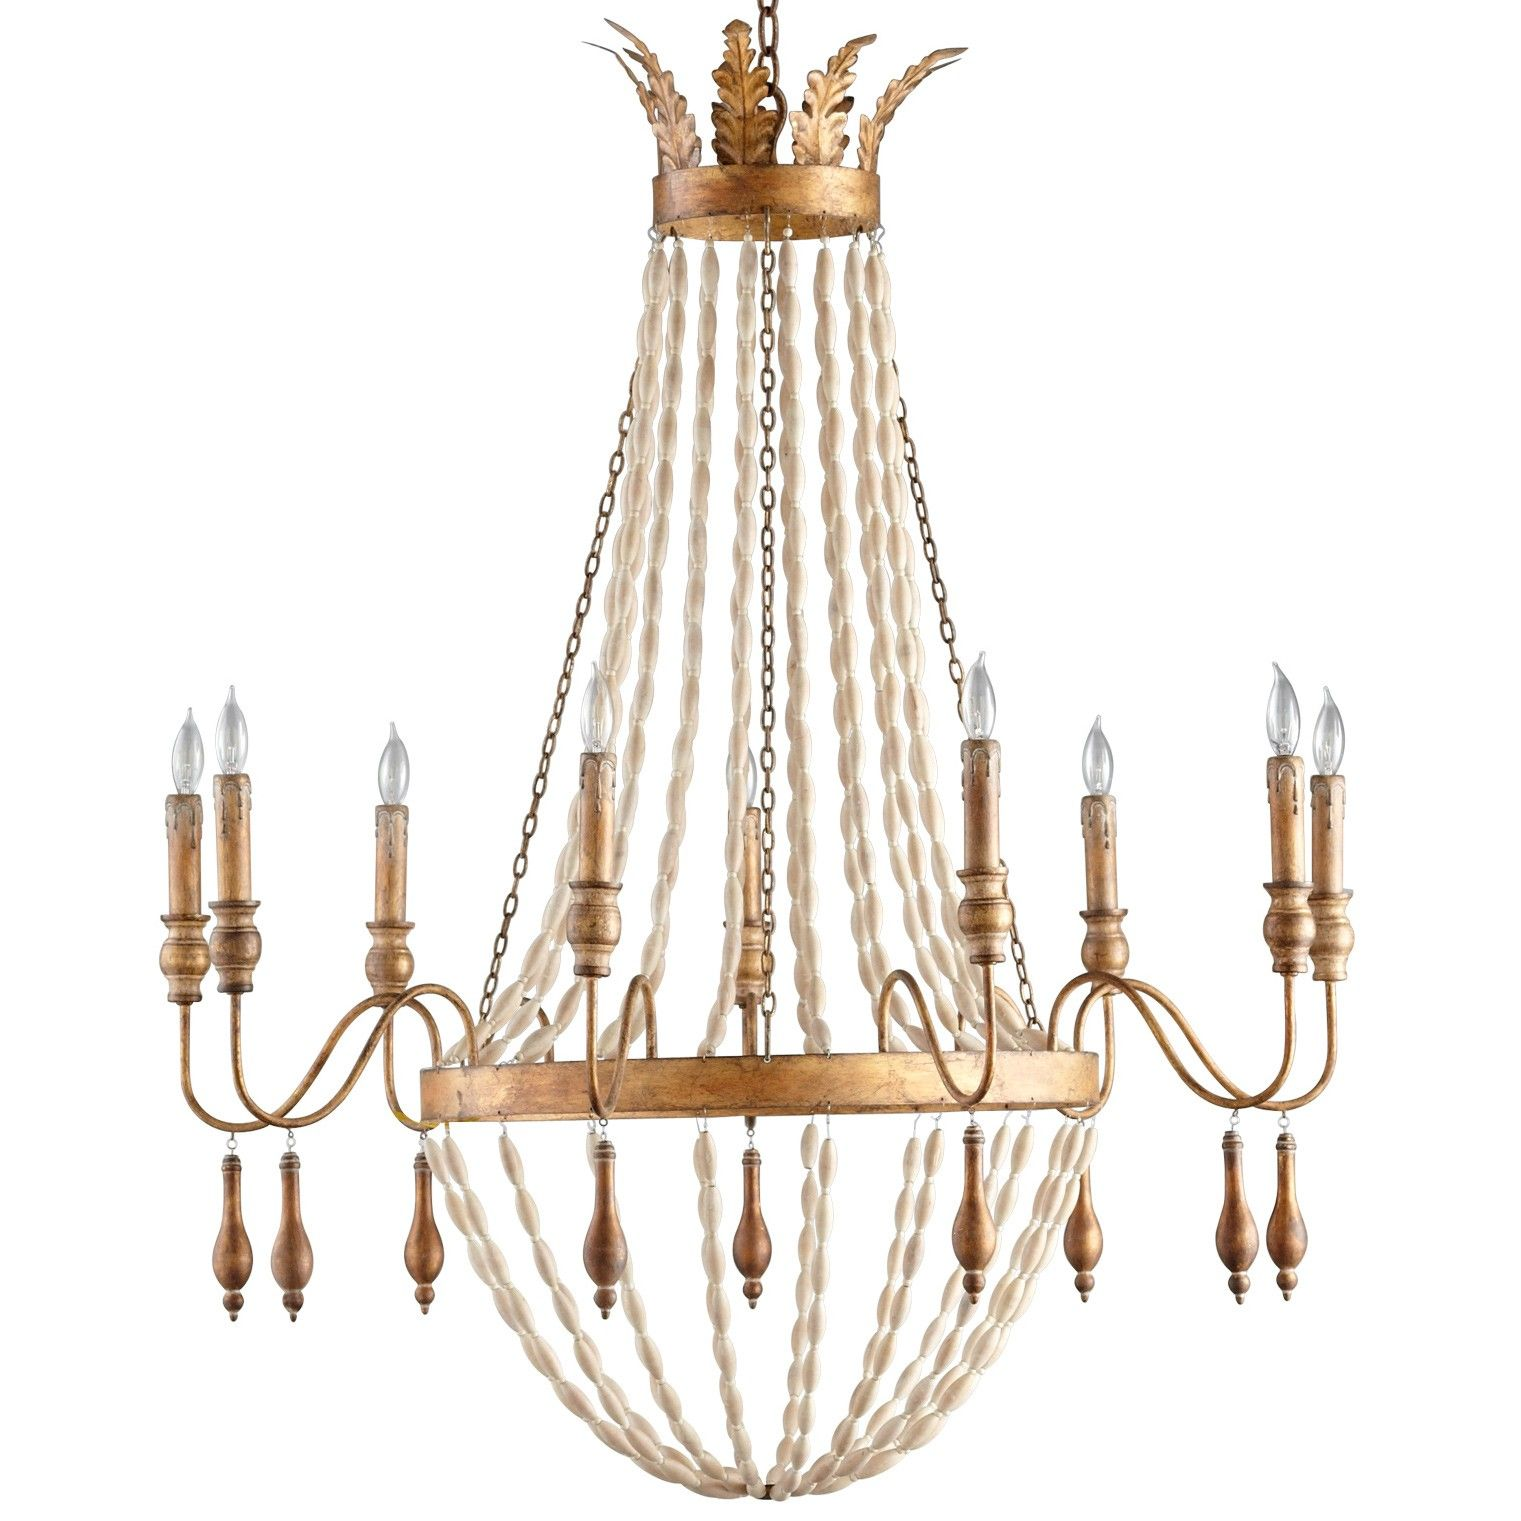 alexandra 9 light chandelier by cyan wrought iron and wood with gold finish - Cyan Canopy Interior